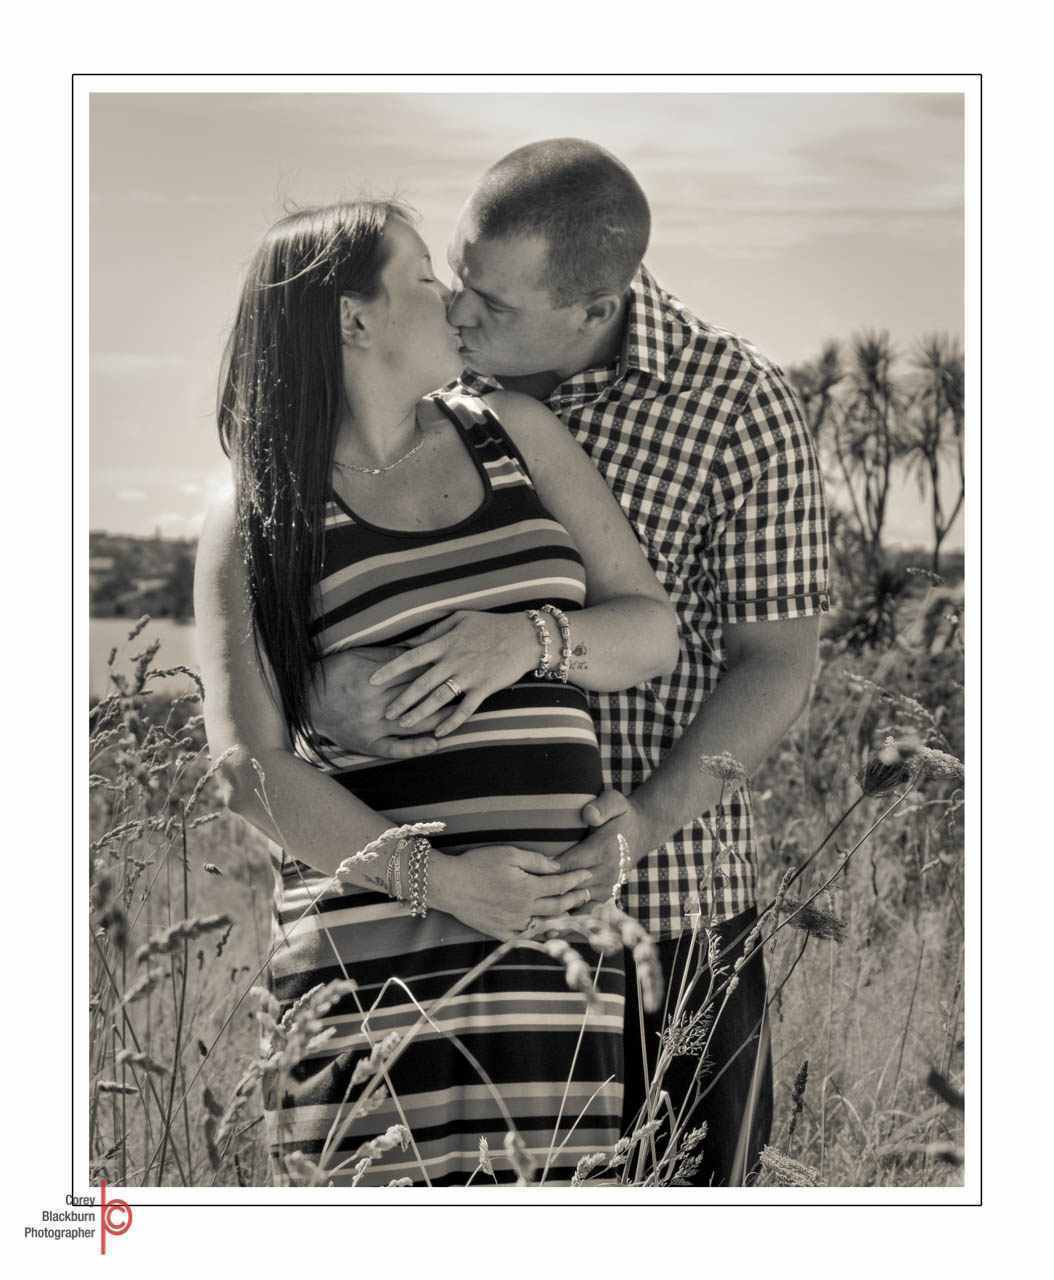 Pregnancy 15 - Corey Blackburn Photographer - Weddings | Pregnancy | Newborn | Portrait | Fine Art | Commercial | Journalism